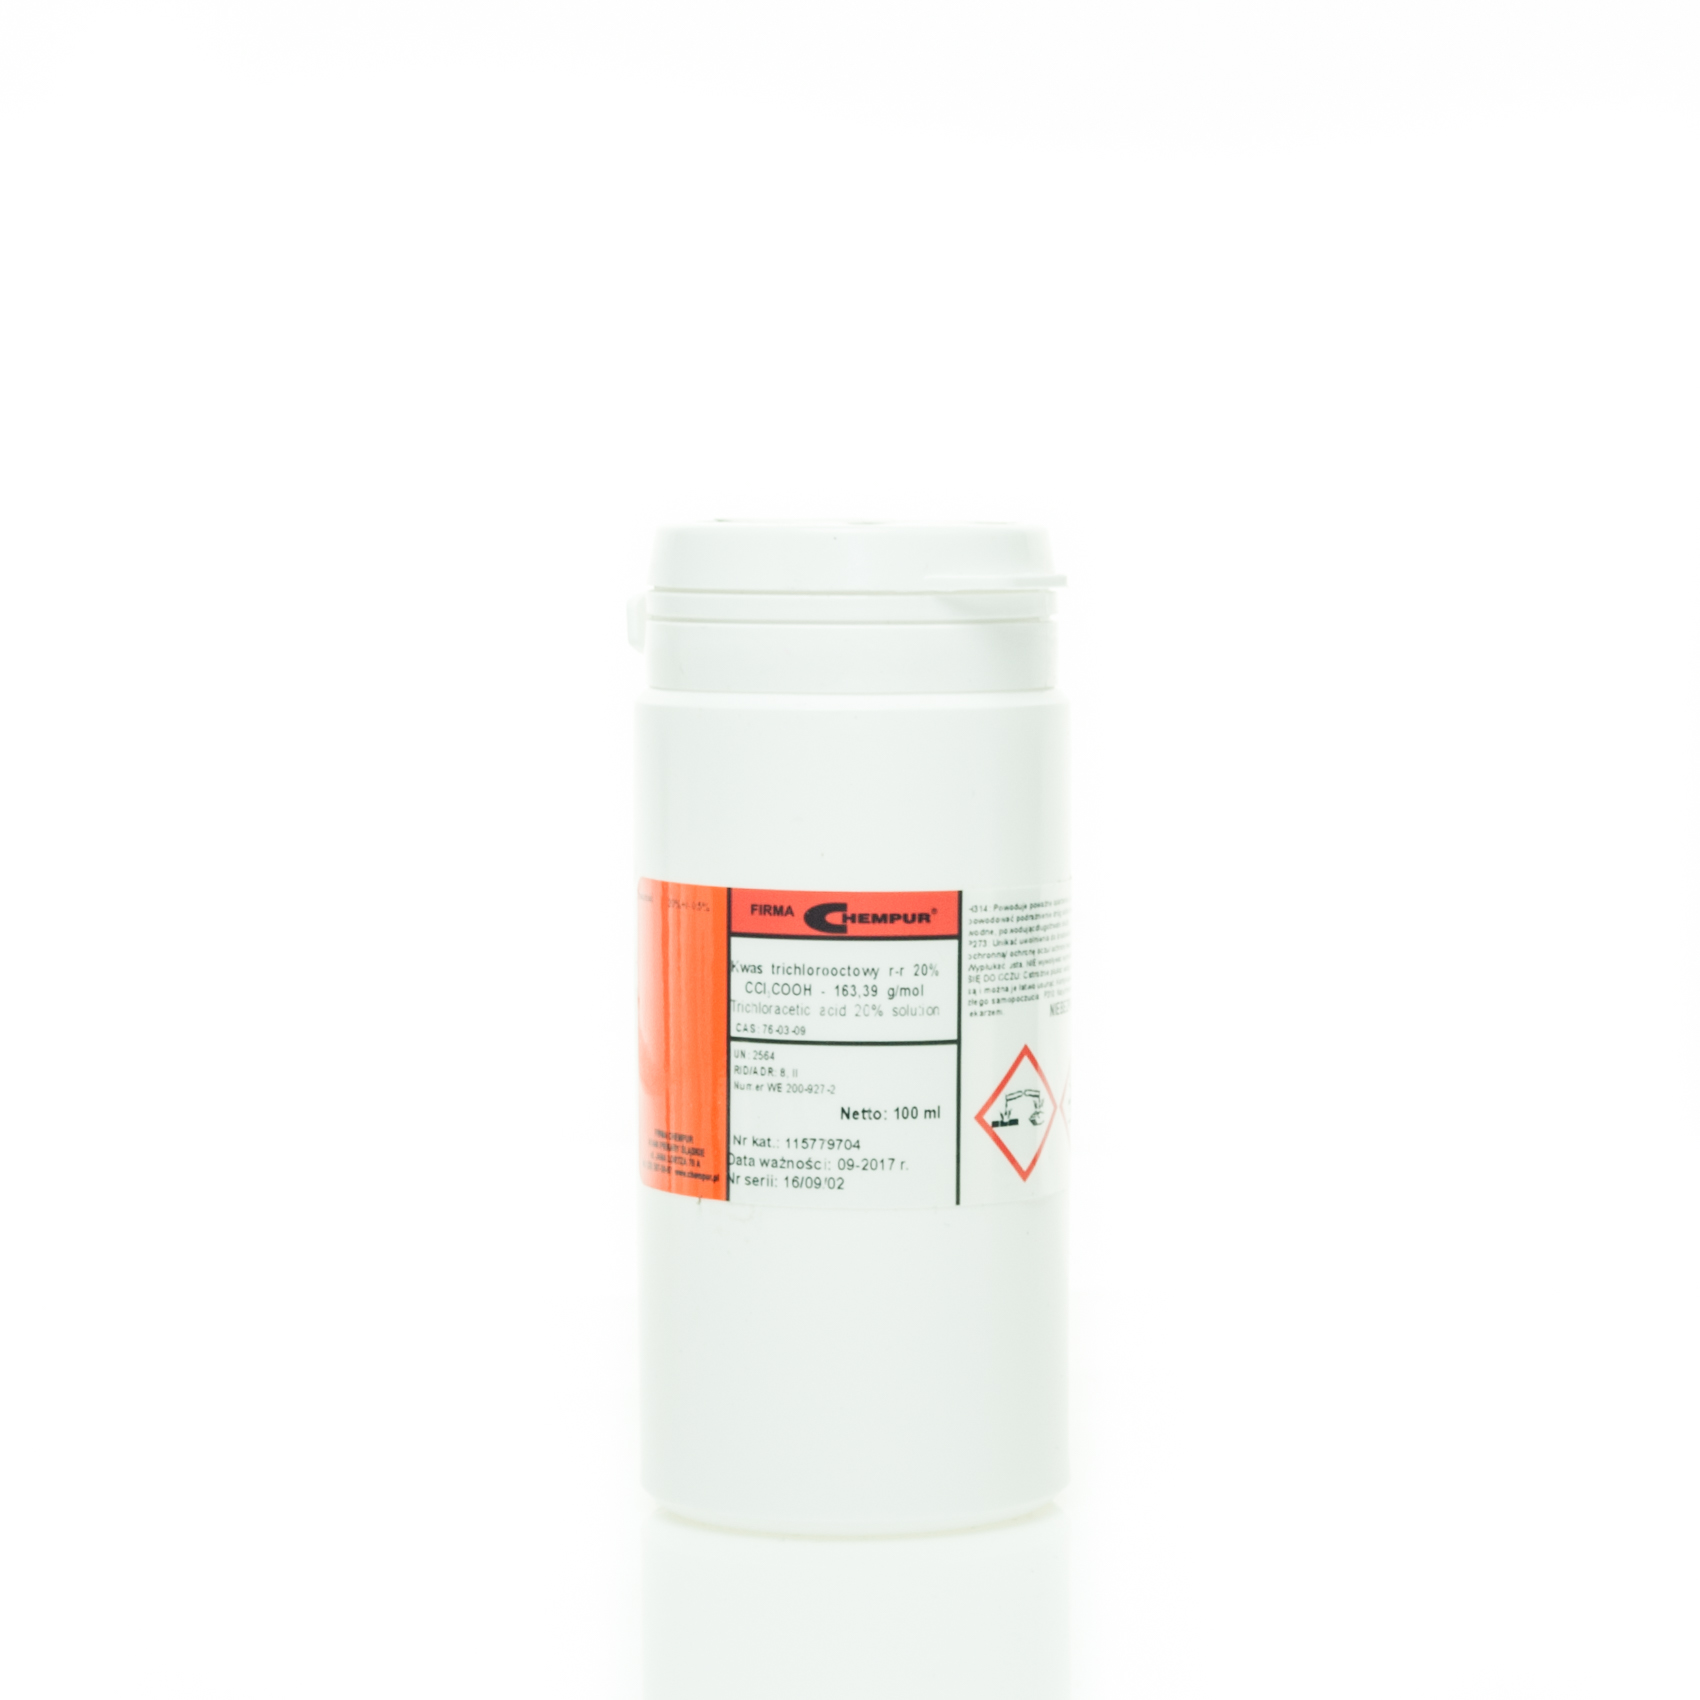 Trichloracetic acid 20% solution